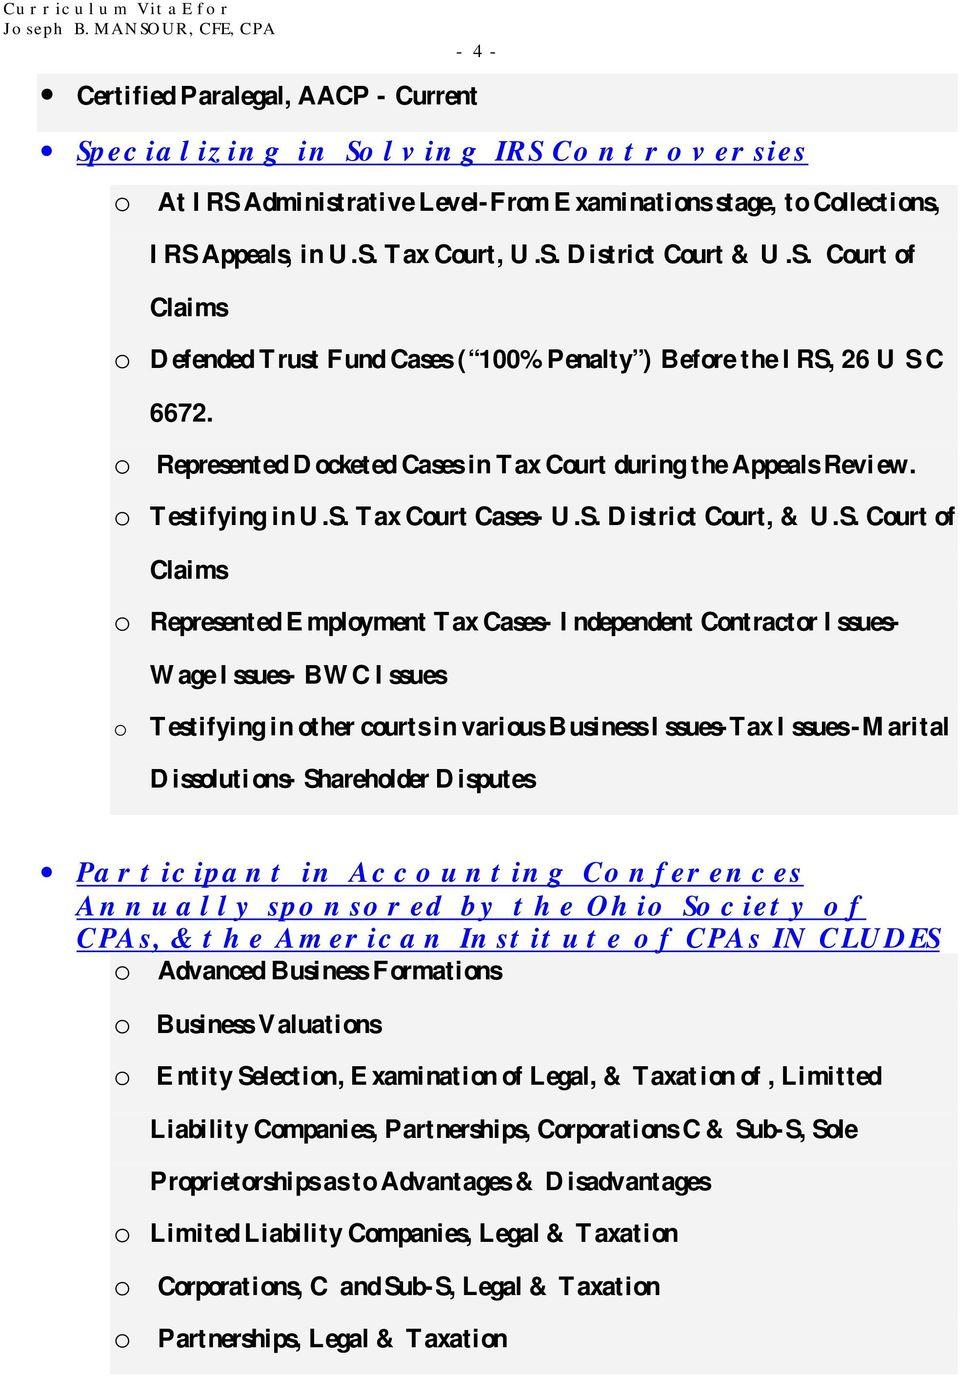 S. District Court, & U.S. Court of Claims o Represented Employment Tax Cases- Independent Contractor Issues- Wage Issues- BWC Issues o Testifying in other courts in various Business Issues-Tax Issues